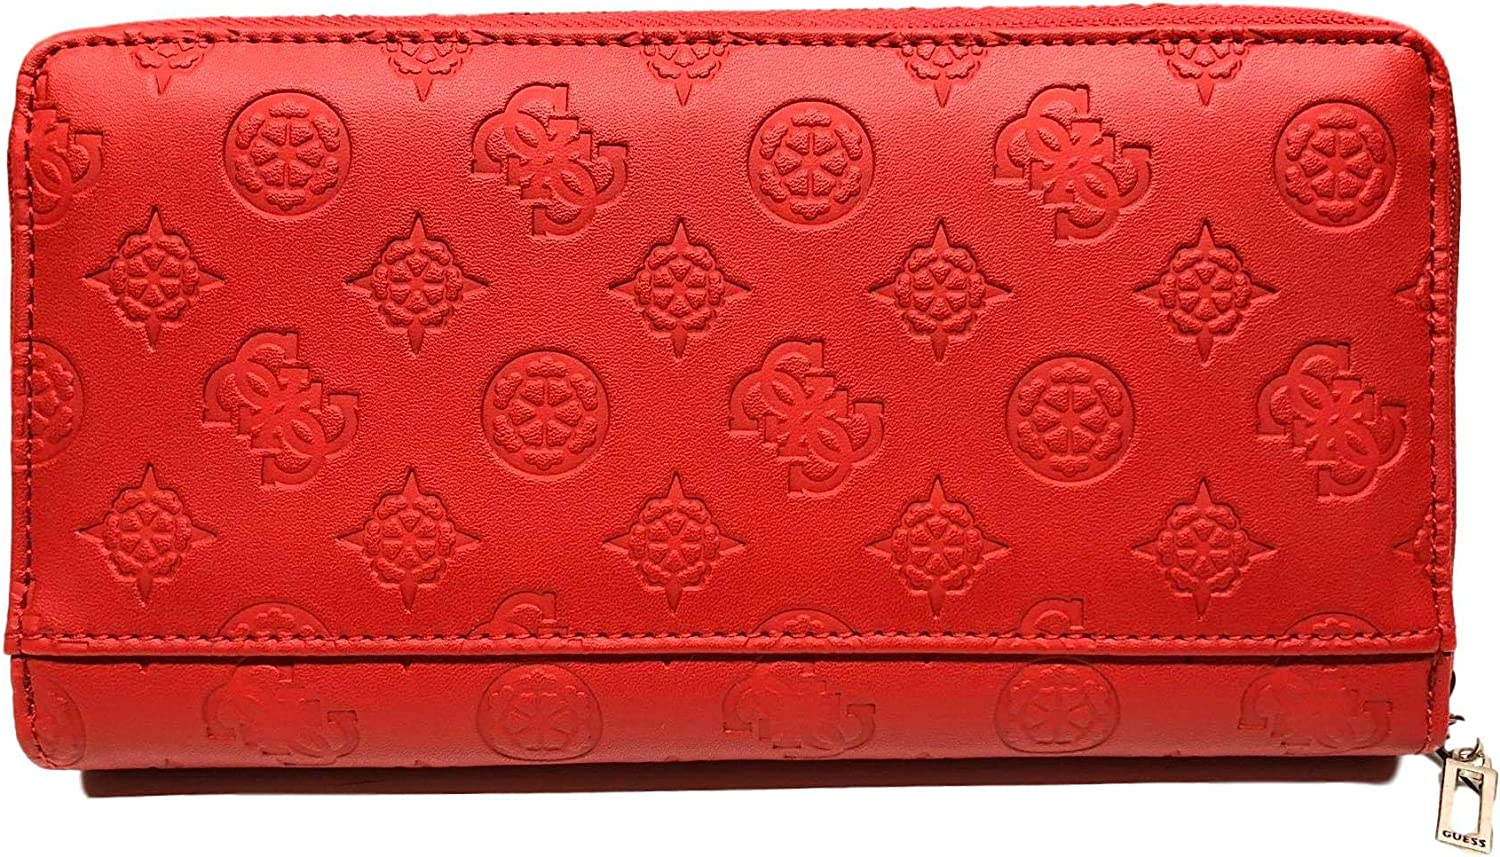 Rouge Guess PORTEFEUILLE SWSG74-73630-RED TAILLE UNI